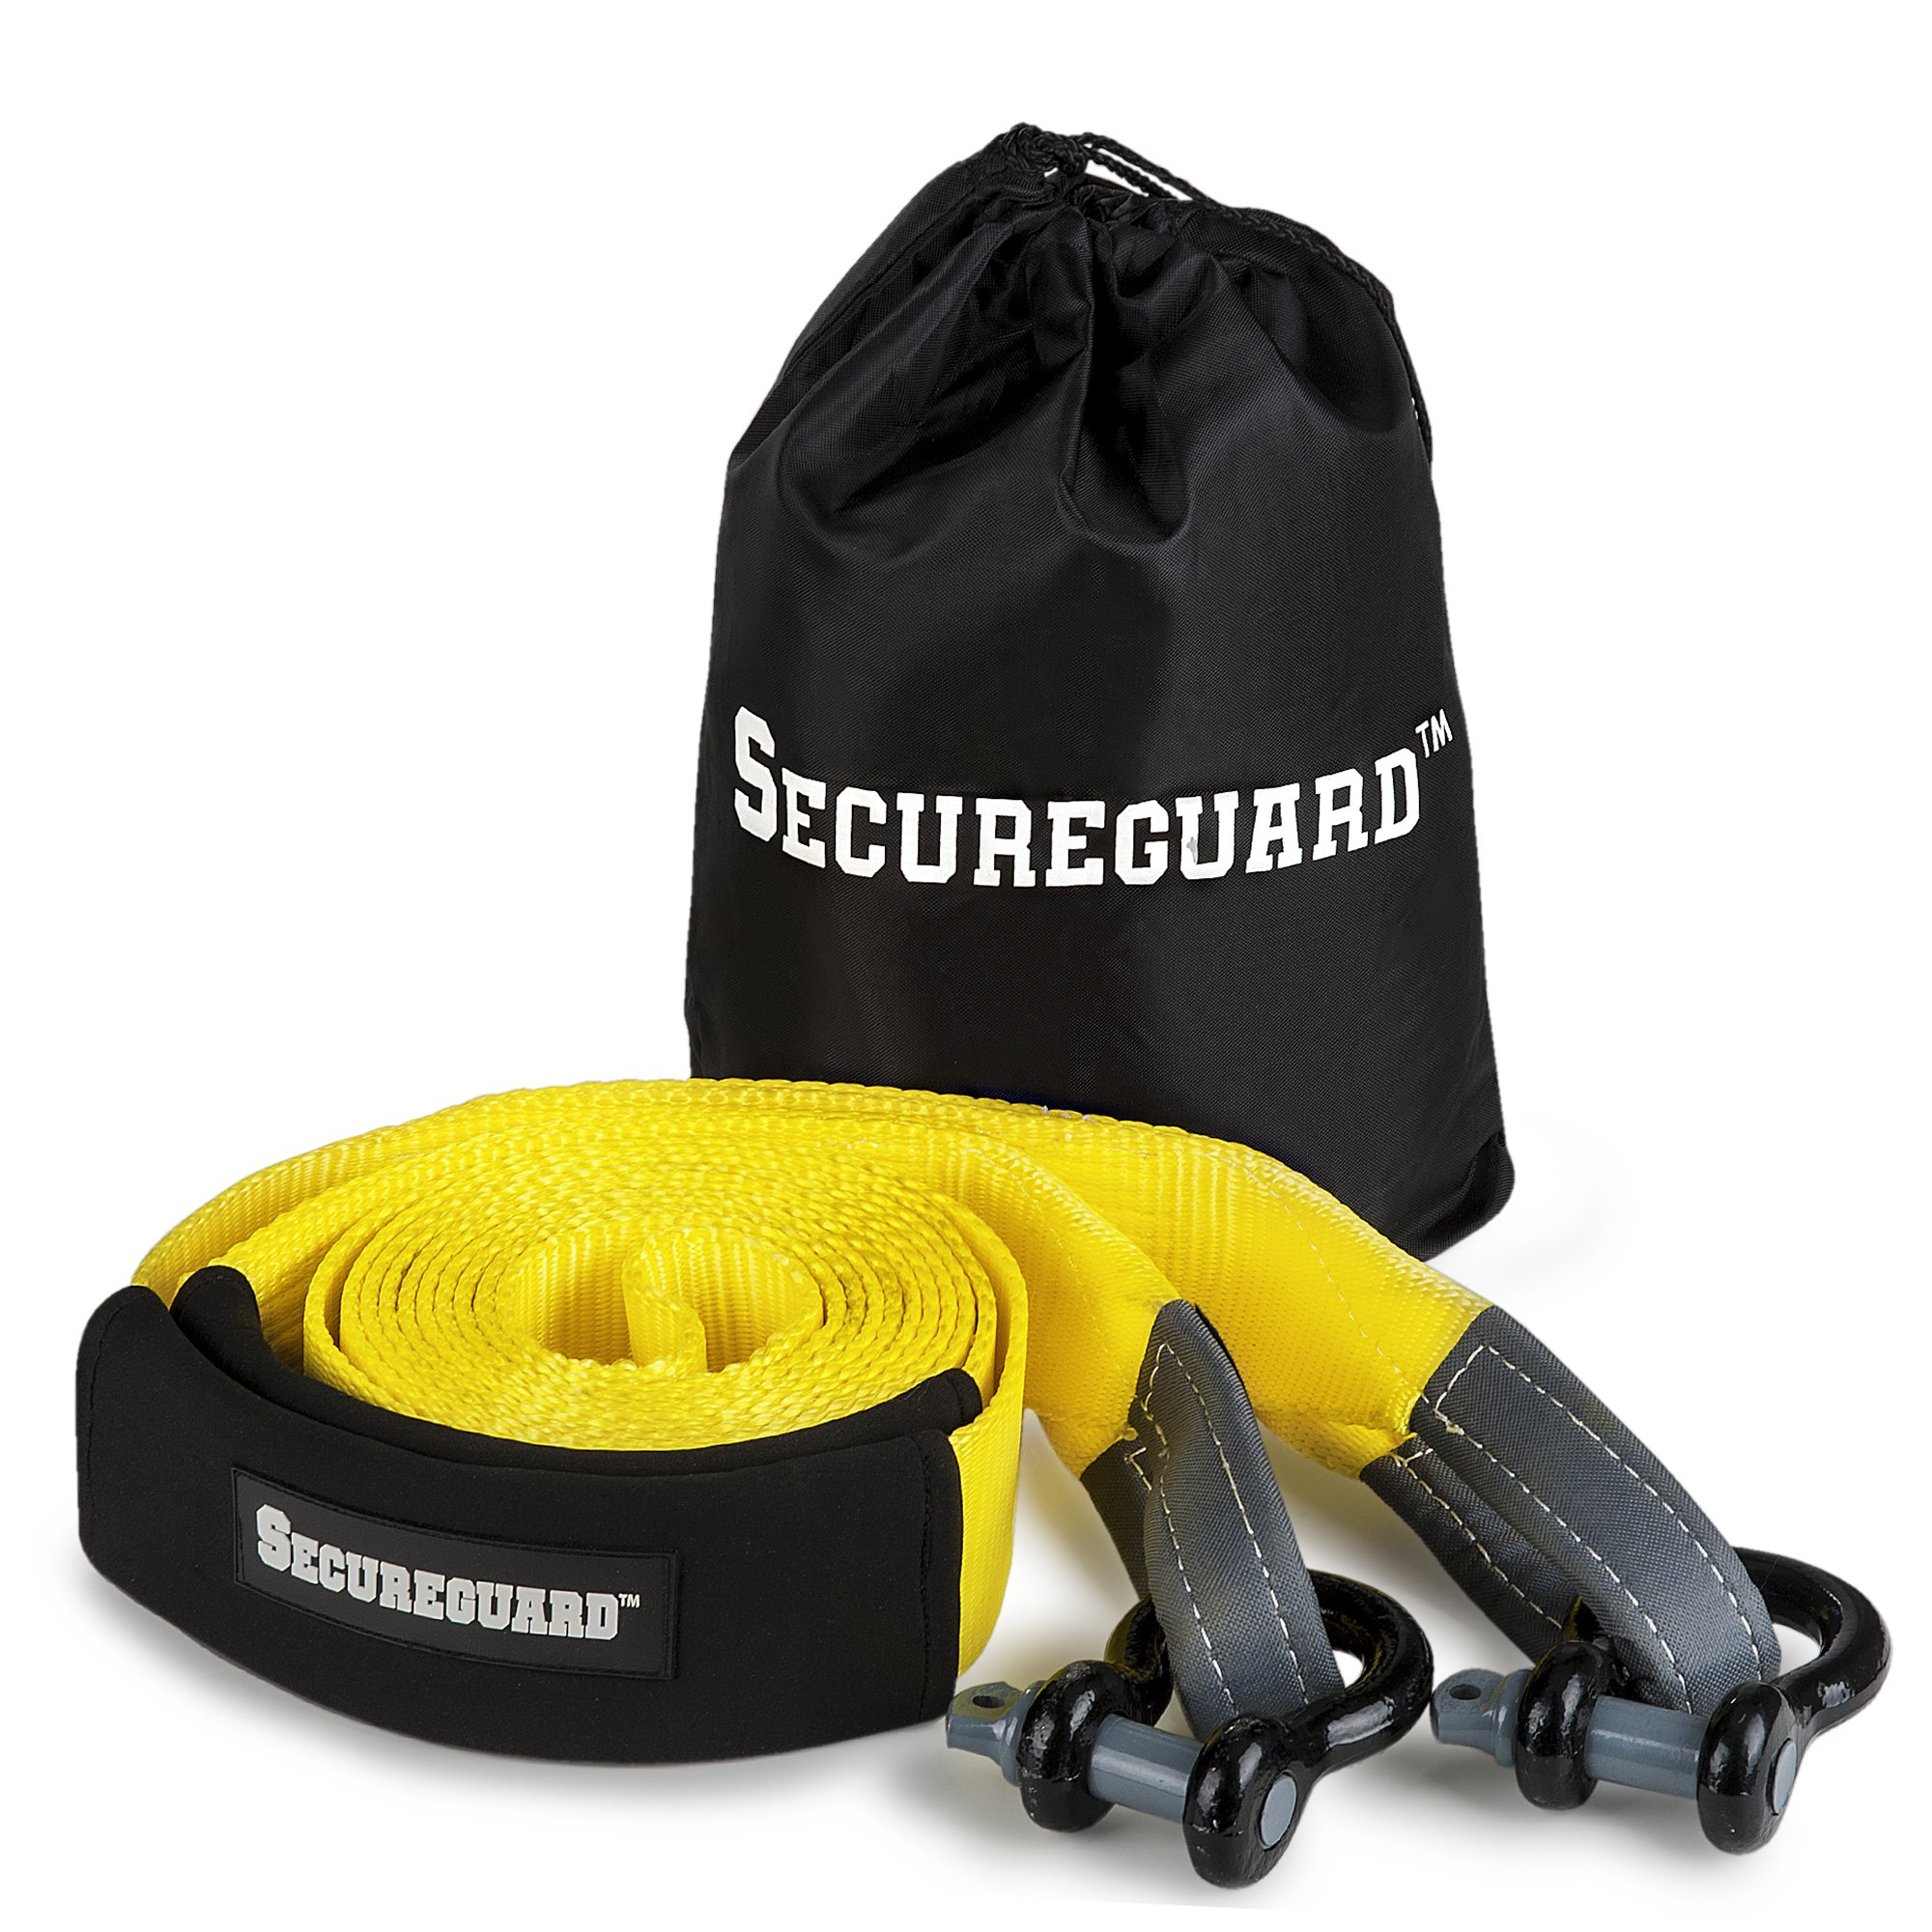 Secureguard – EXTRA HEAVY DUTY Tow Rope   Strap rated for 30,000lbs   20 Feet Long   Includes Steel U-Hooks for ease of use & Reinforced Eye Hoops for reliable towing